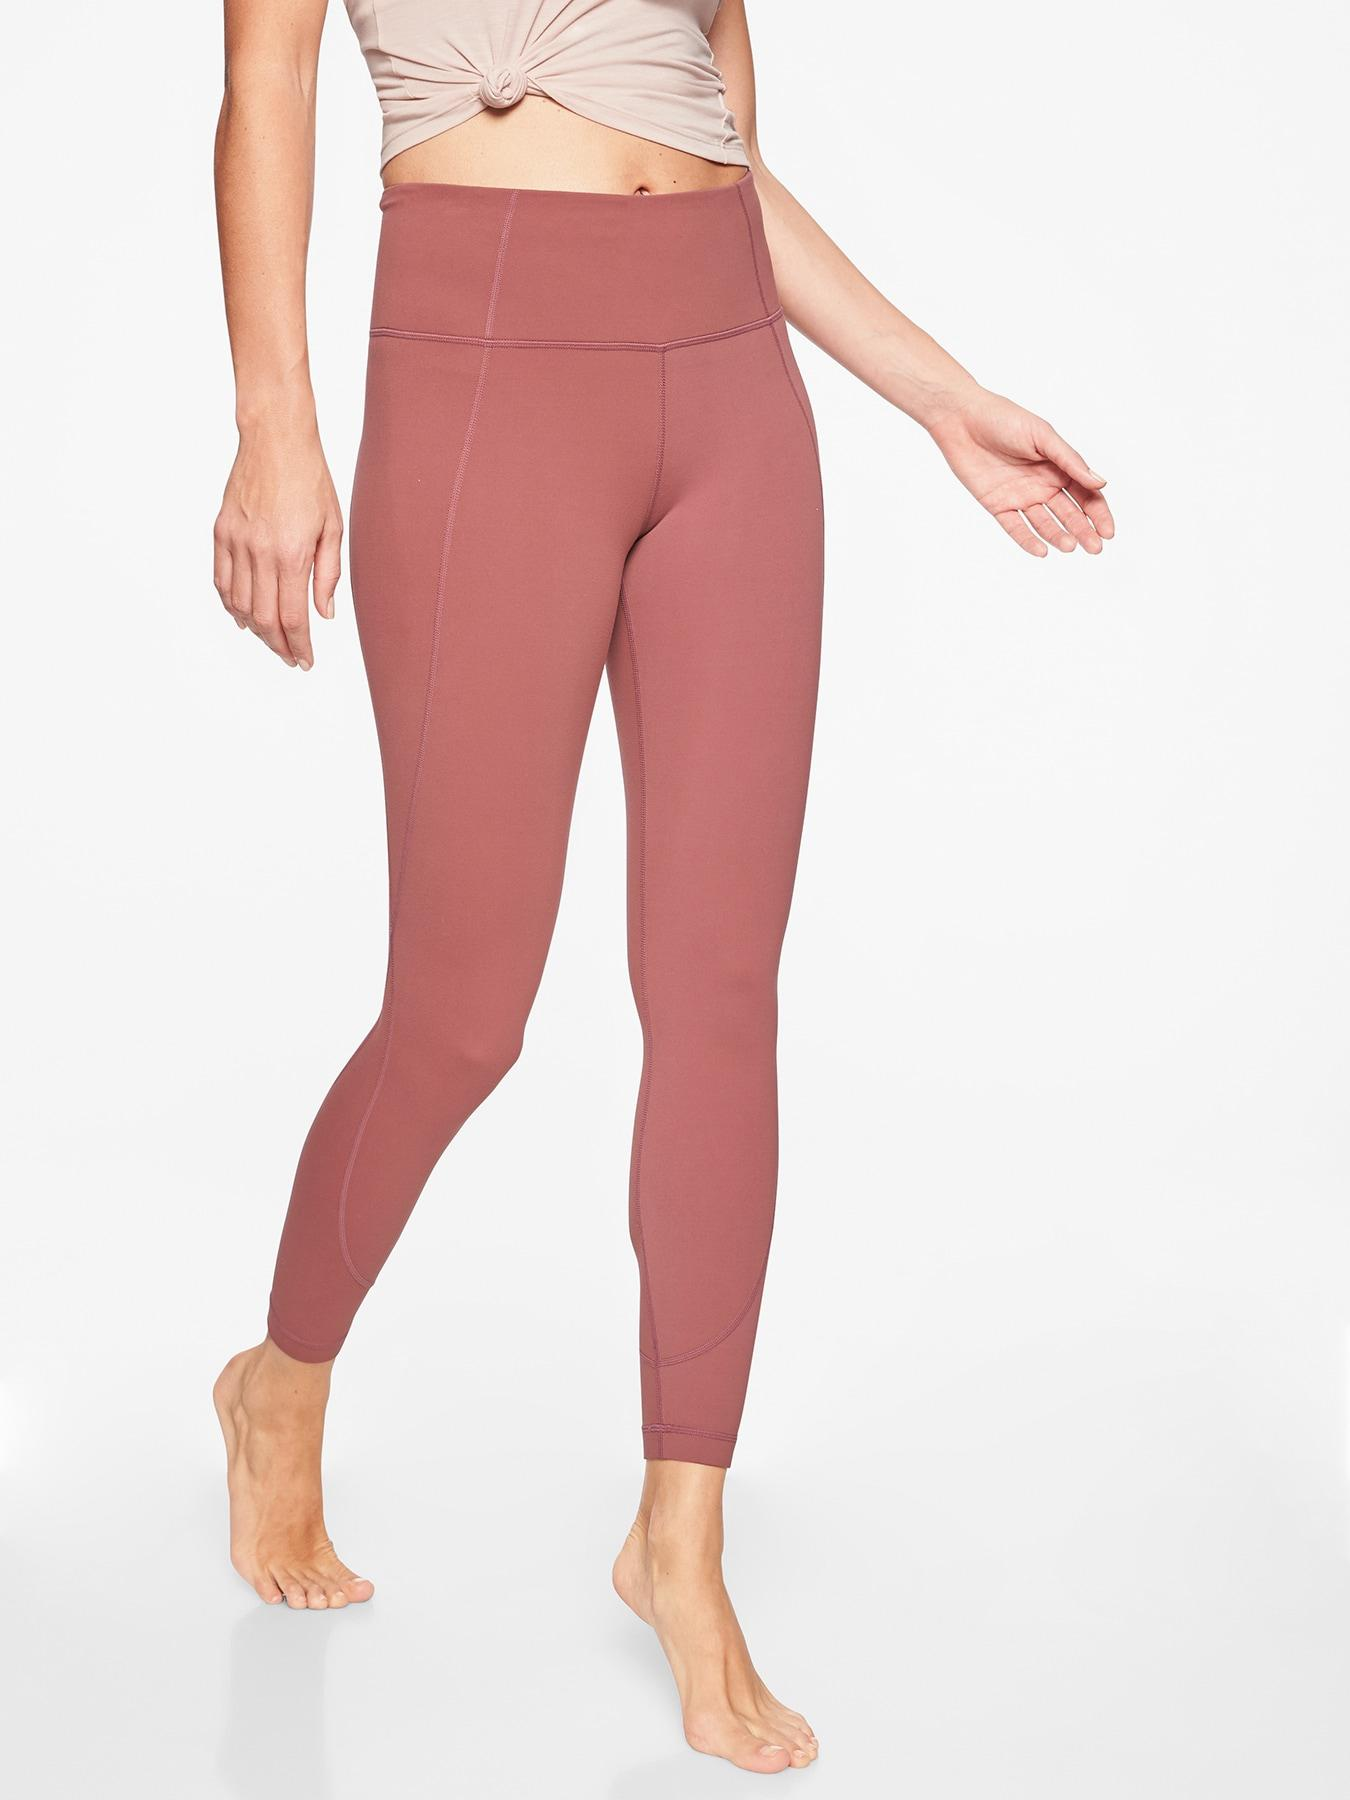 627983a0b1f57e Athleta Salutation 7/8 Tight In Powervita in Red - Lyst